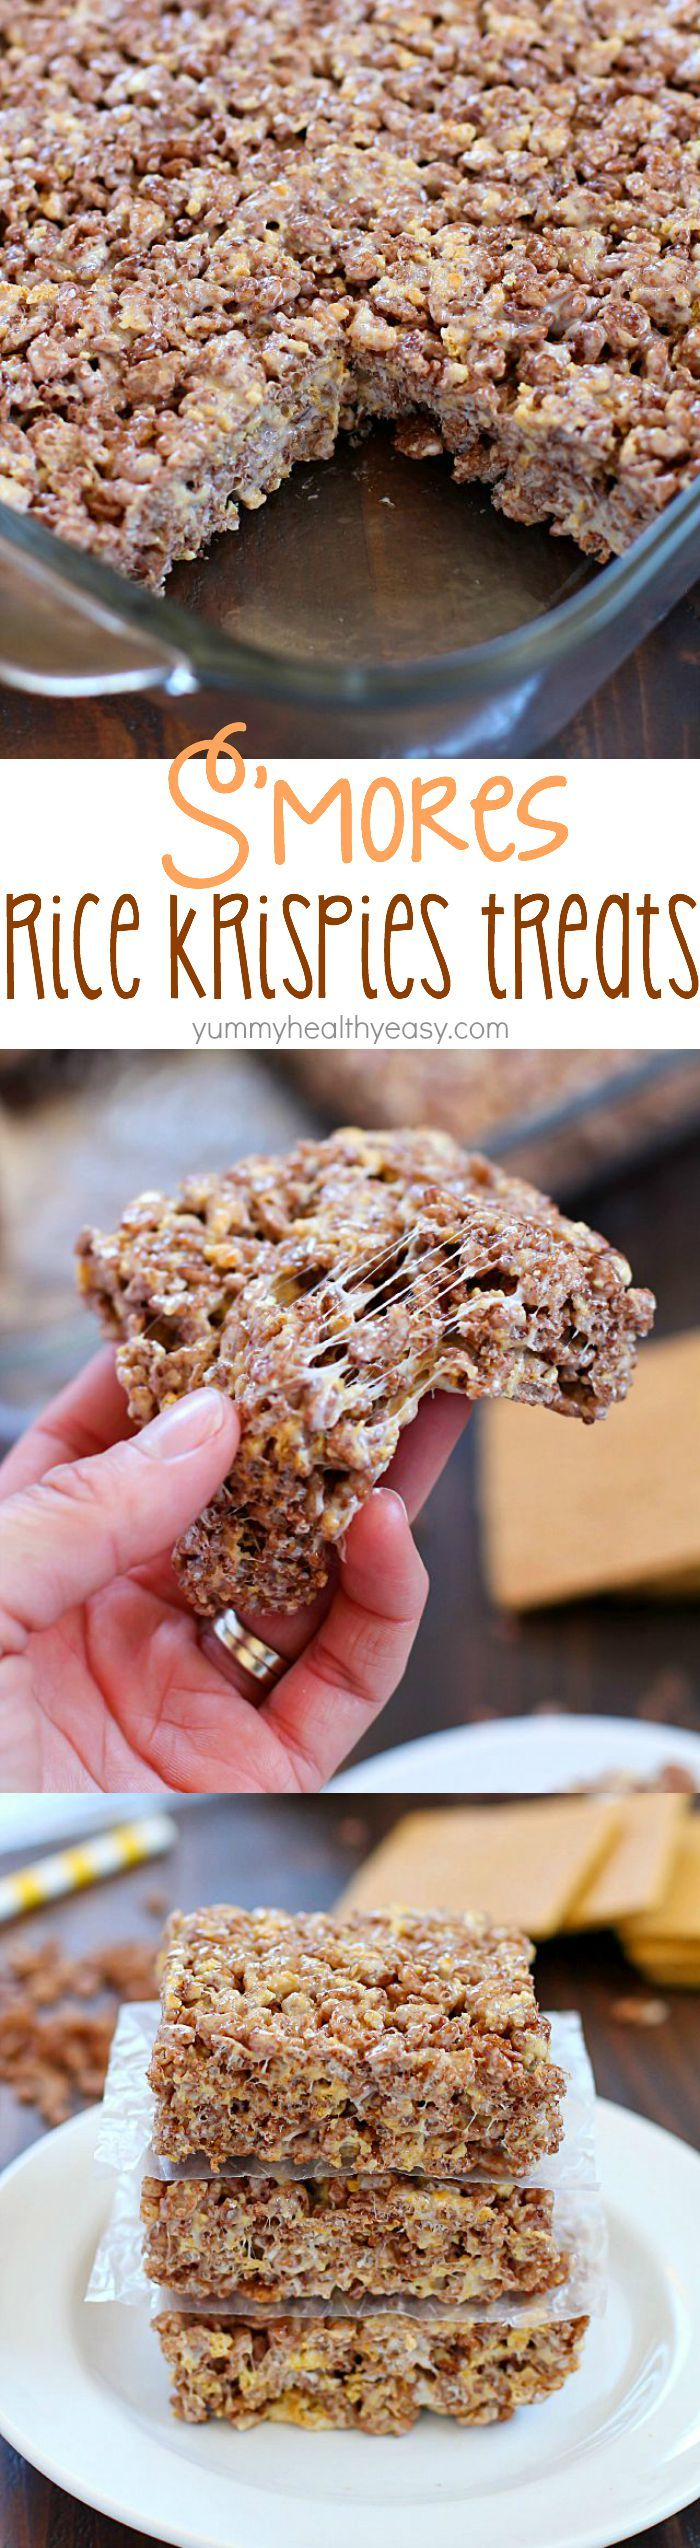 Take those boring rice krispies treats to a whole new level and make them into S'mores Rice Krispies Treats! With marshmallow, graham crackers and Cocoa Krispies, these S'mores Rice Krispies Treats are the BOMB!